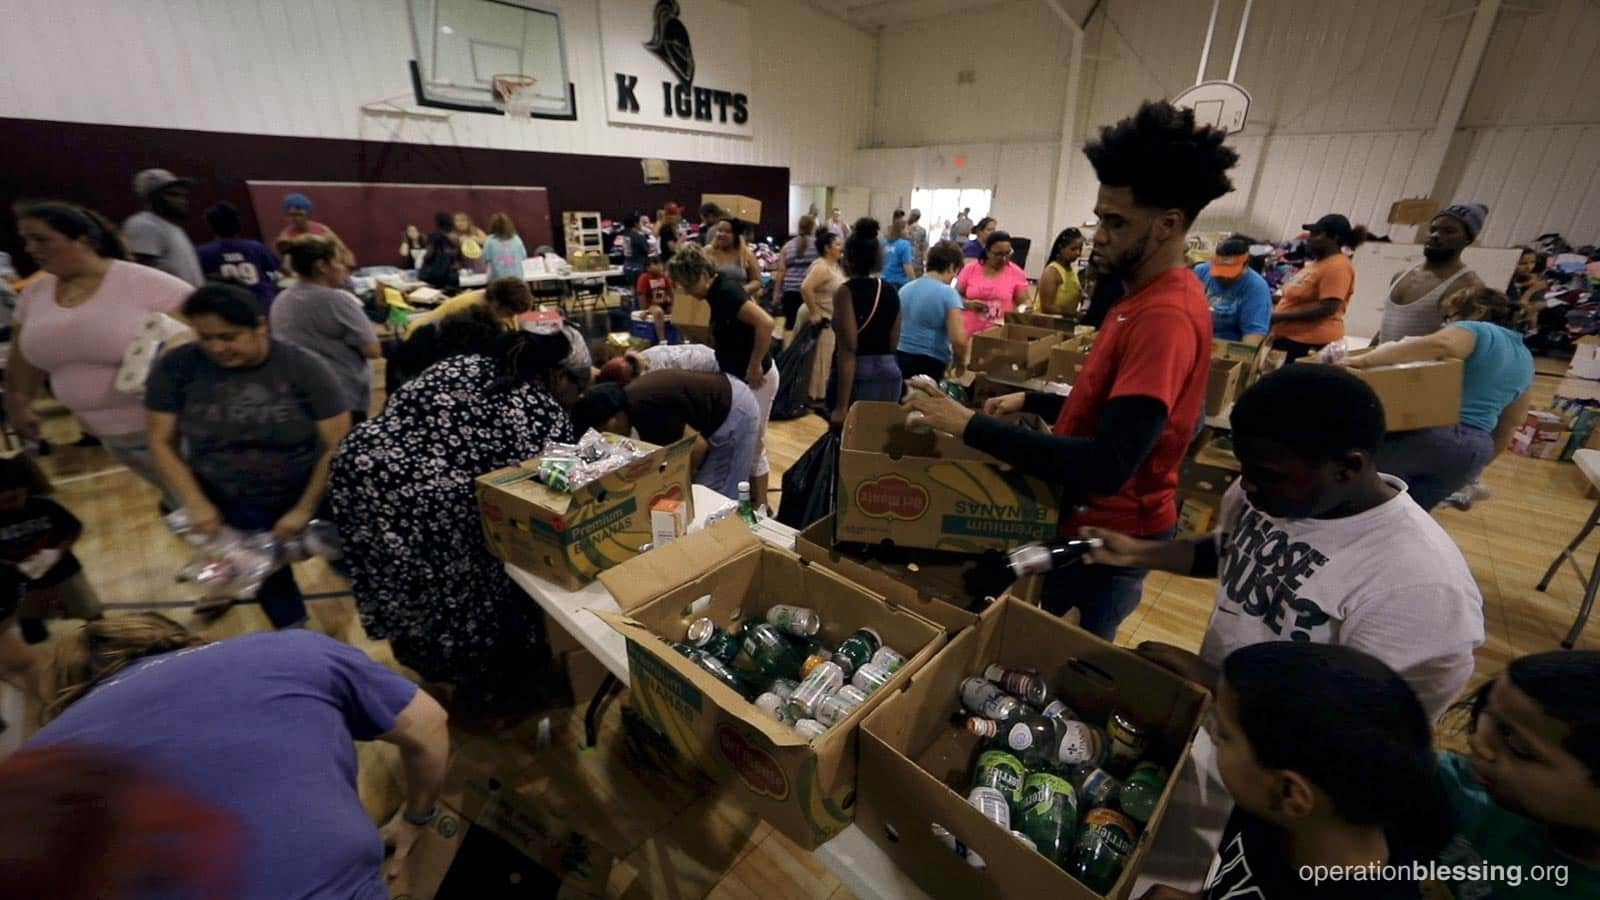 Those in need after Hurricane Harvey flock to the disaster relief supplies being offered by Operation Blessing.